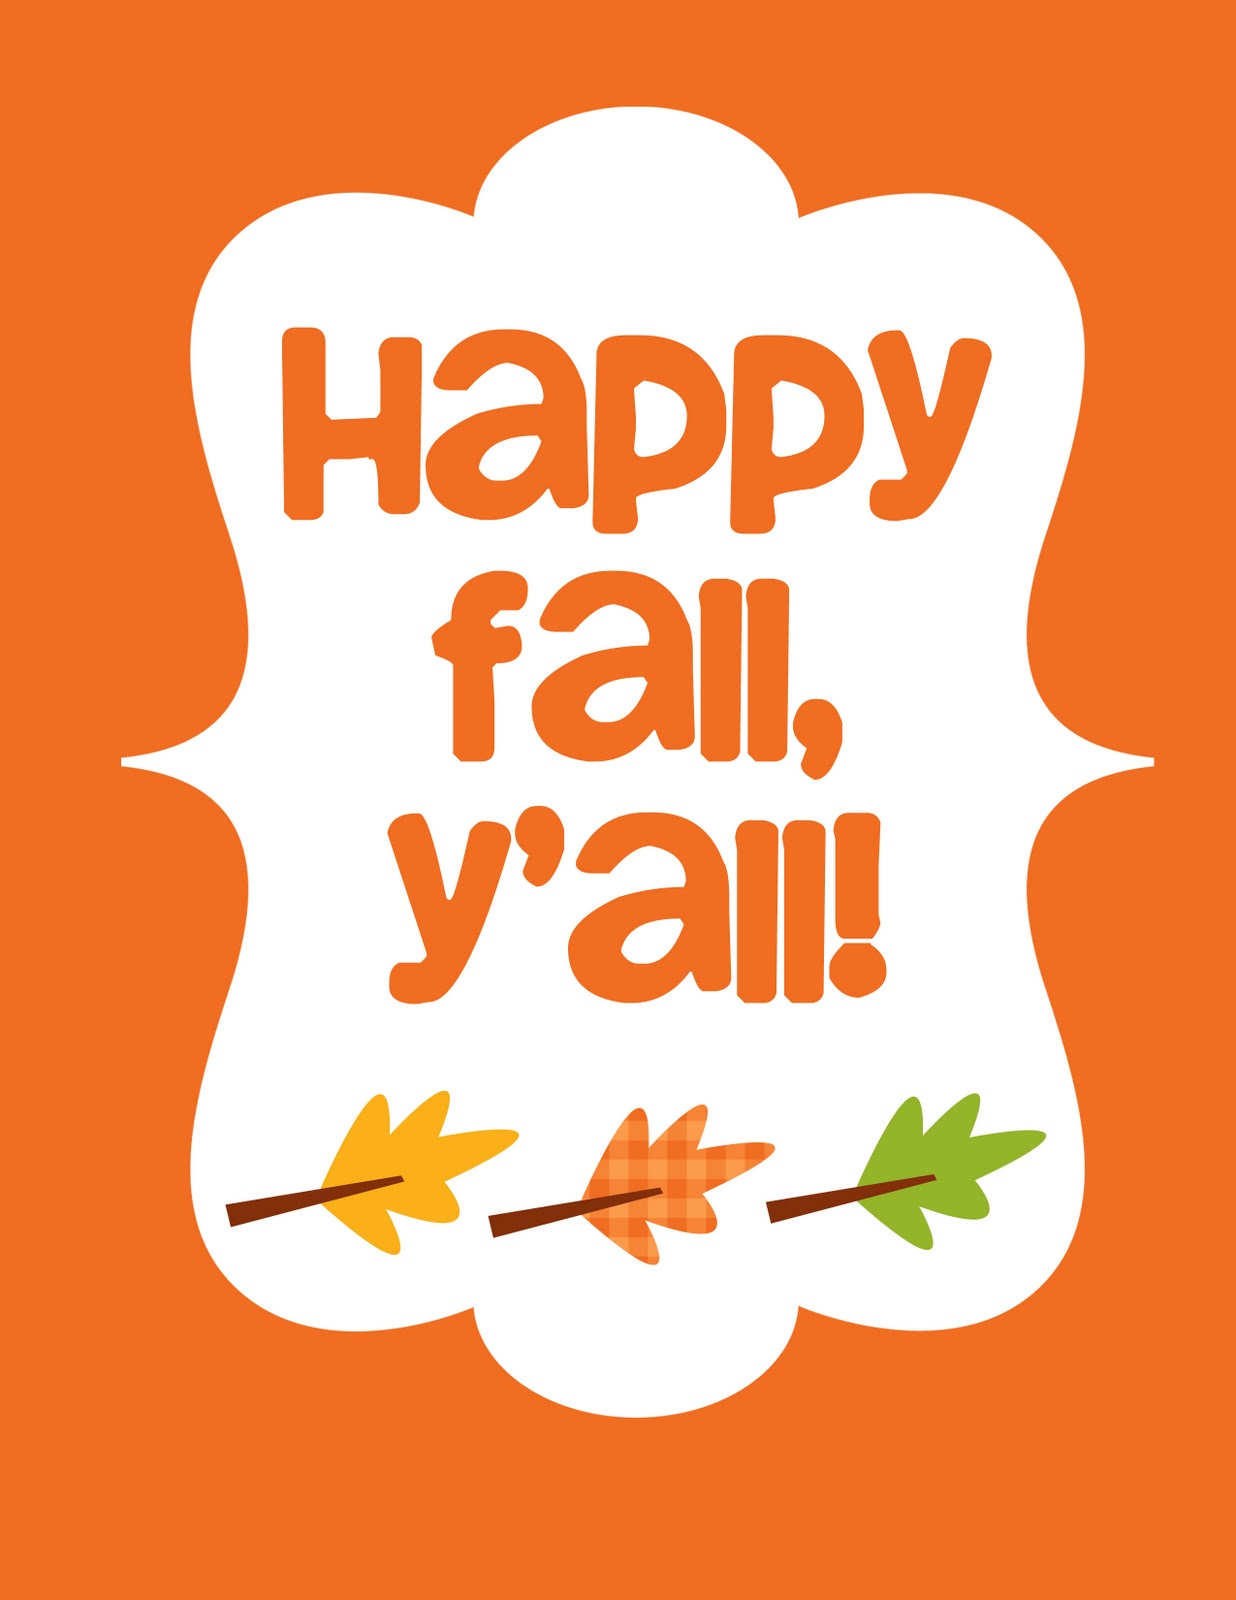 Wild image intended for happy fall y all printable